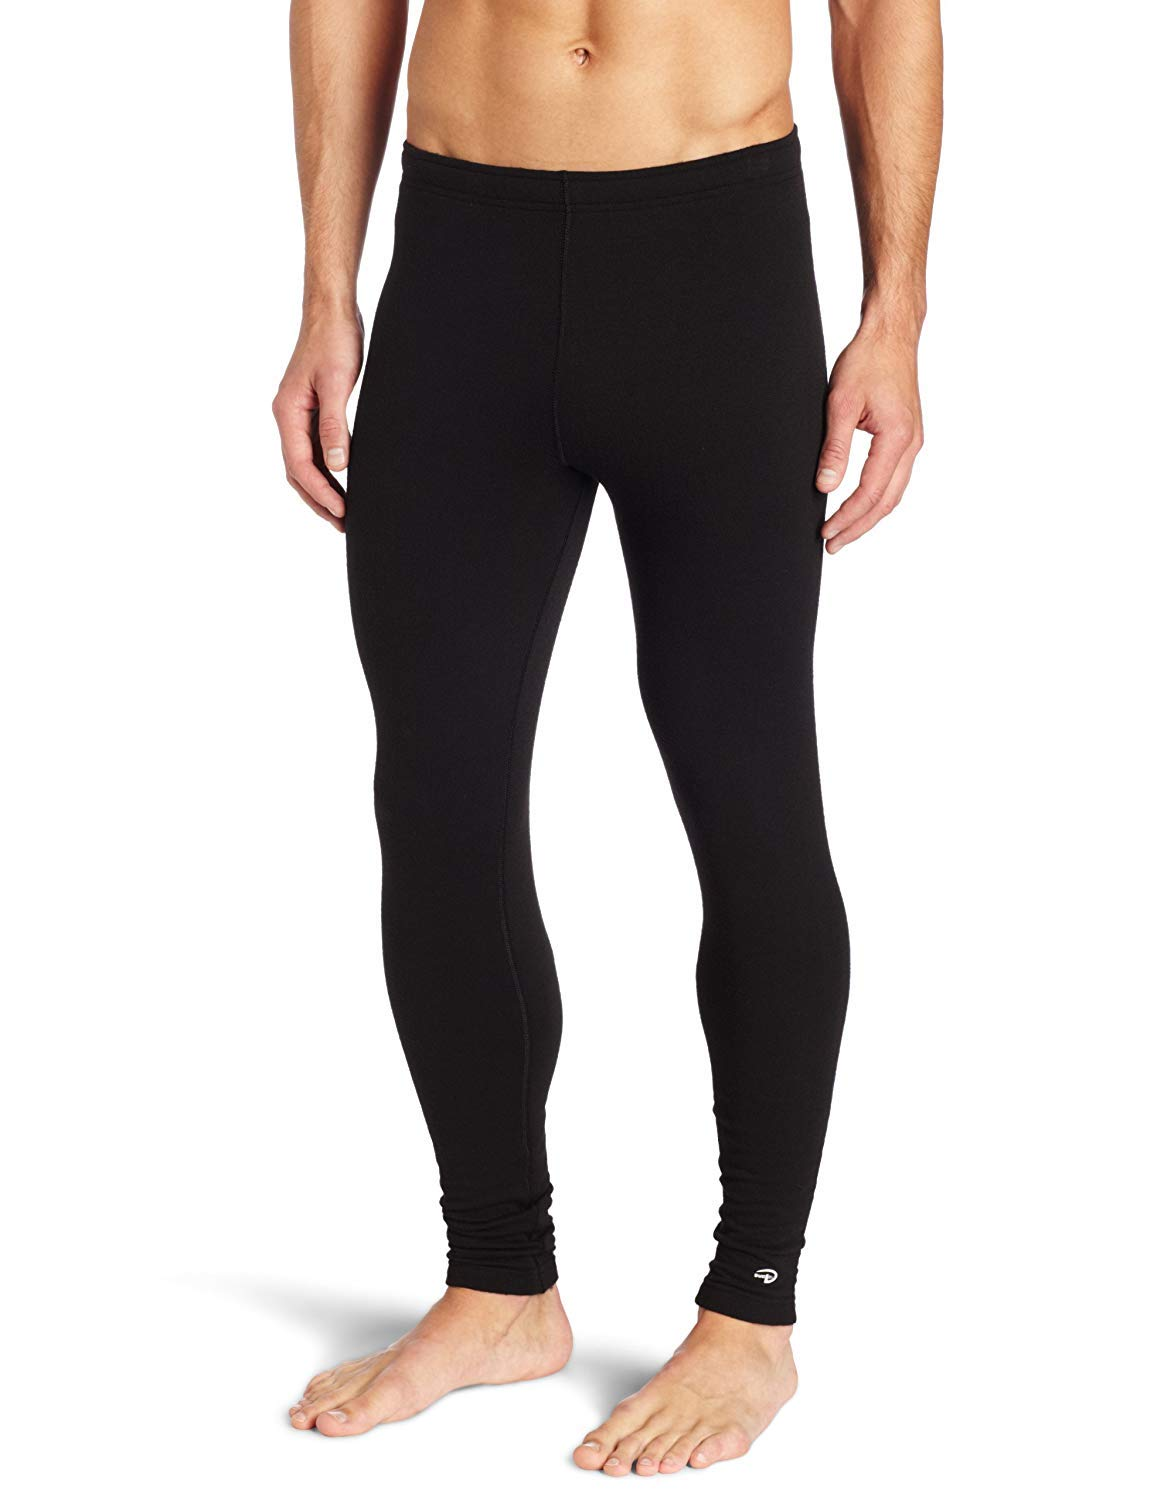 Duofold Men's Expedition Weight Two-Layer Thermal Tagless Bottom, Black, Medium by Duofold